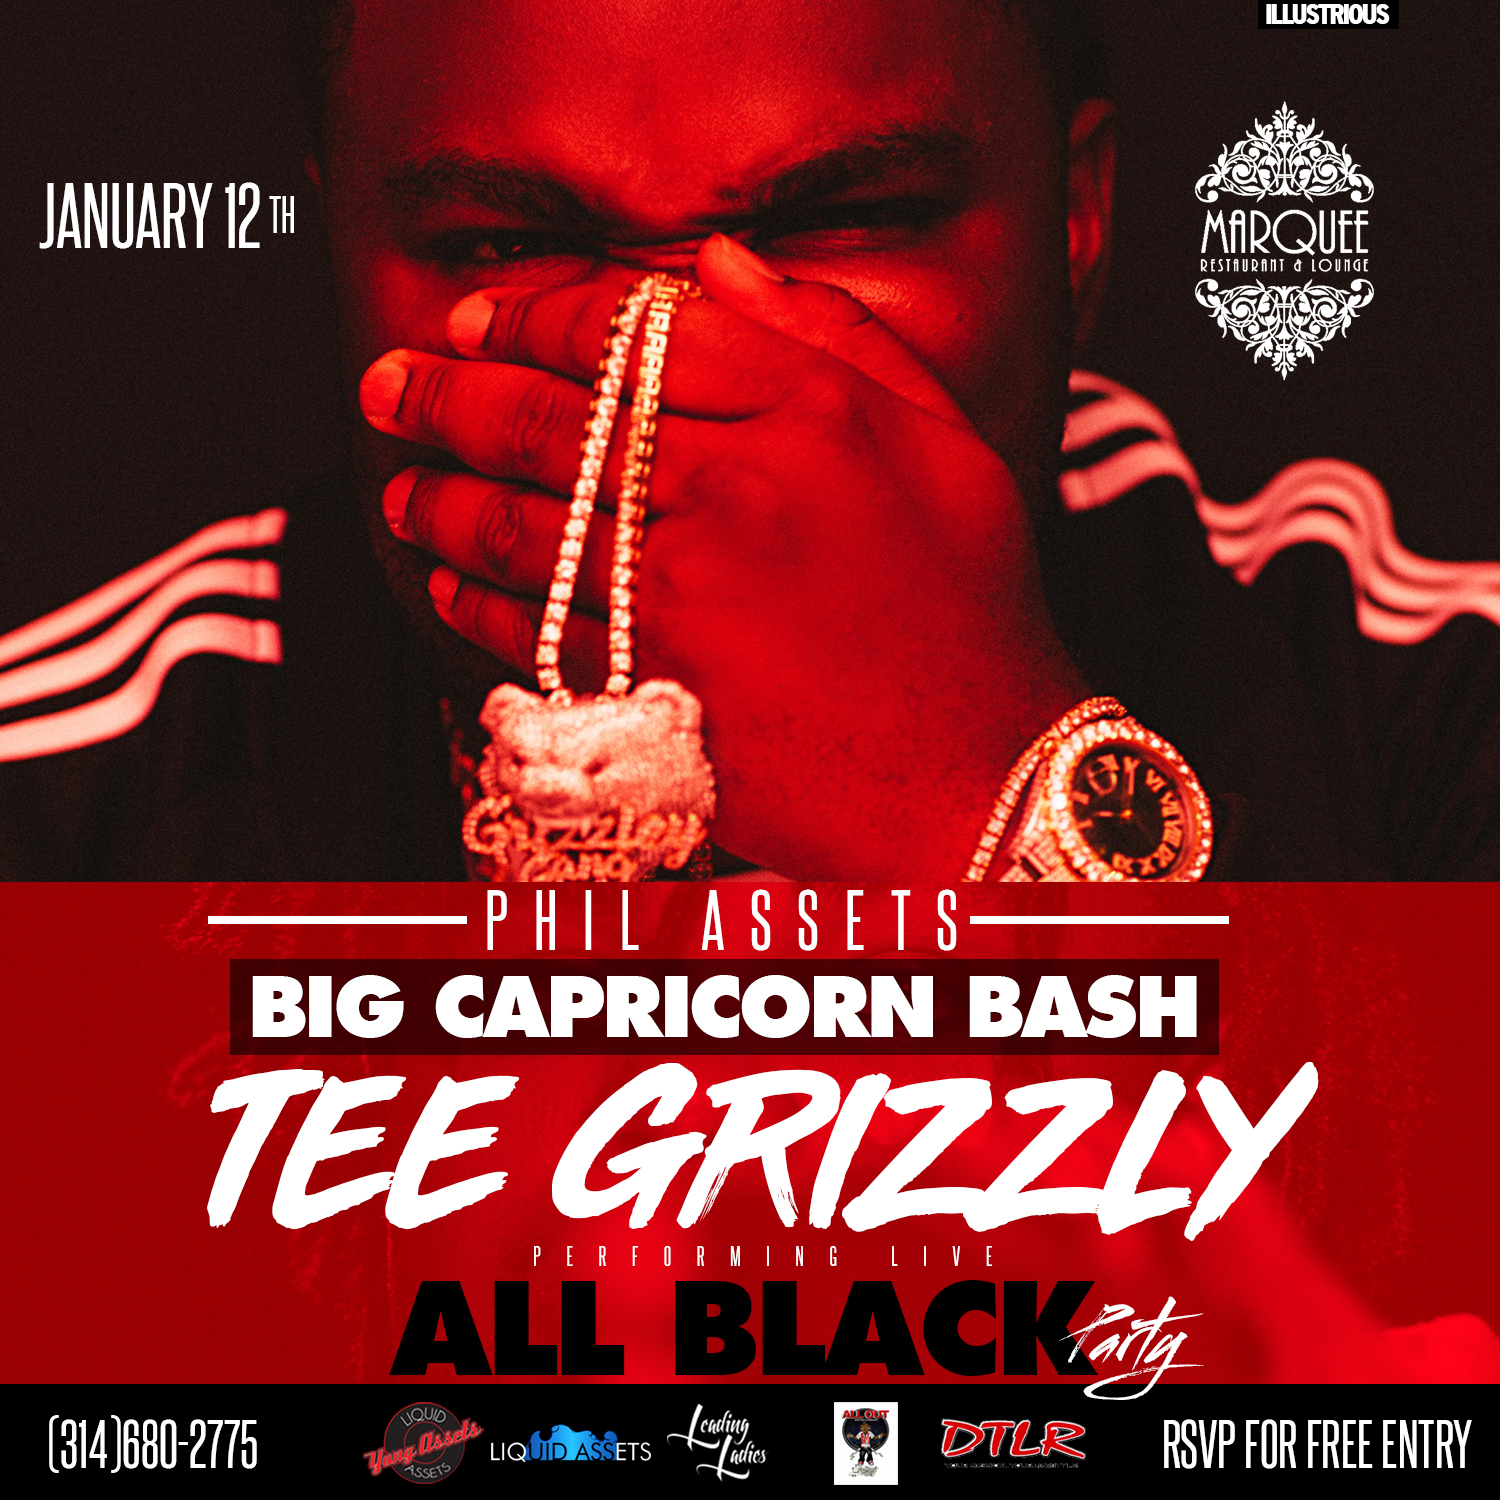 Tee Grizzley at All Black Party